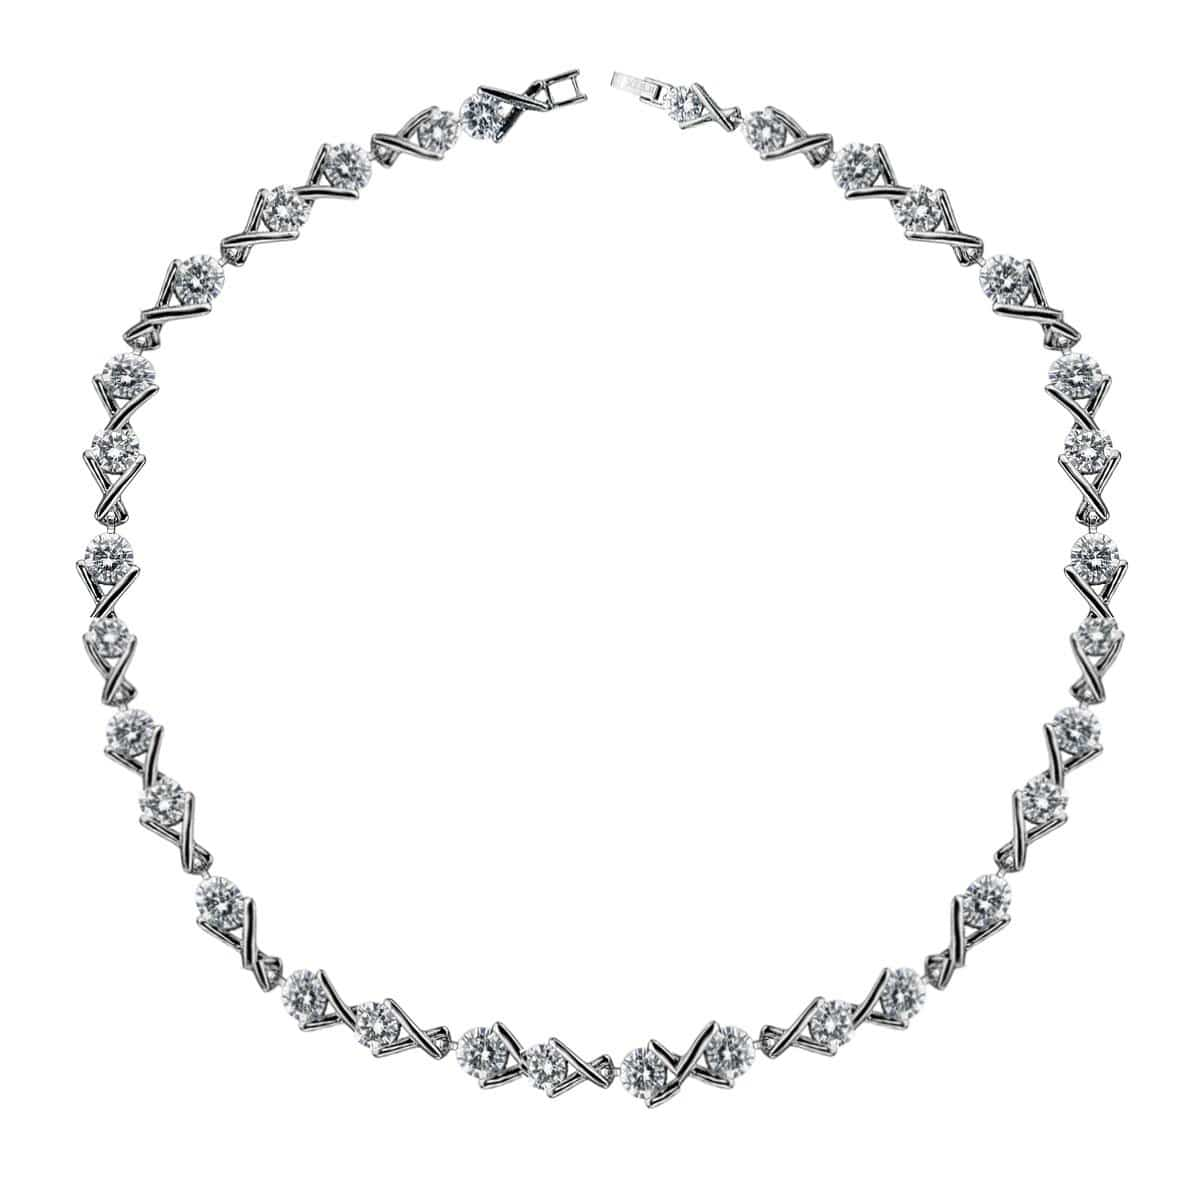 Silver Stainless Steel with Round CZ and X-Design Tennis Bracelet